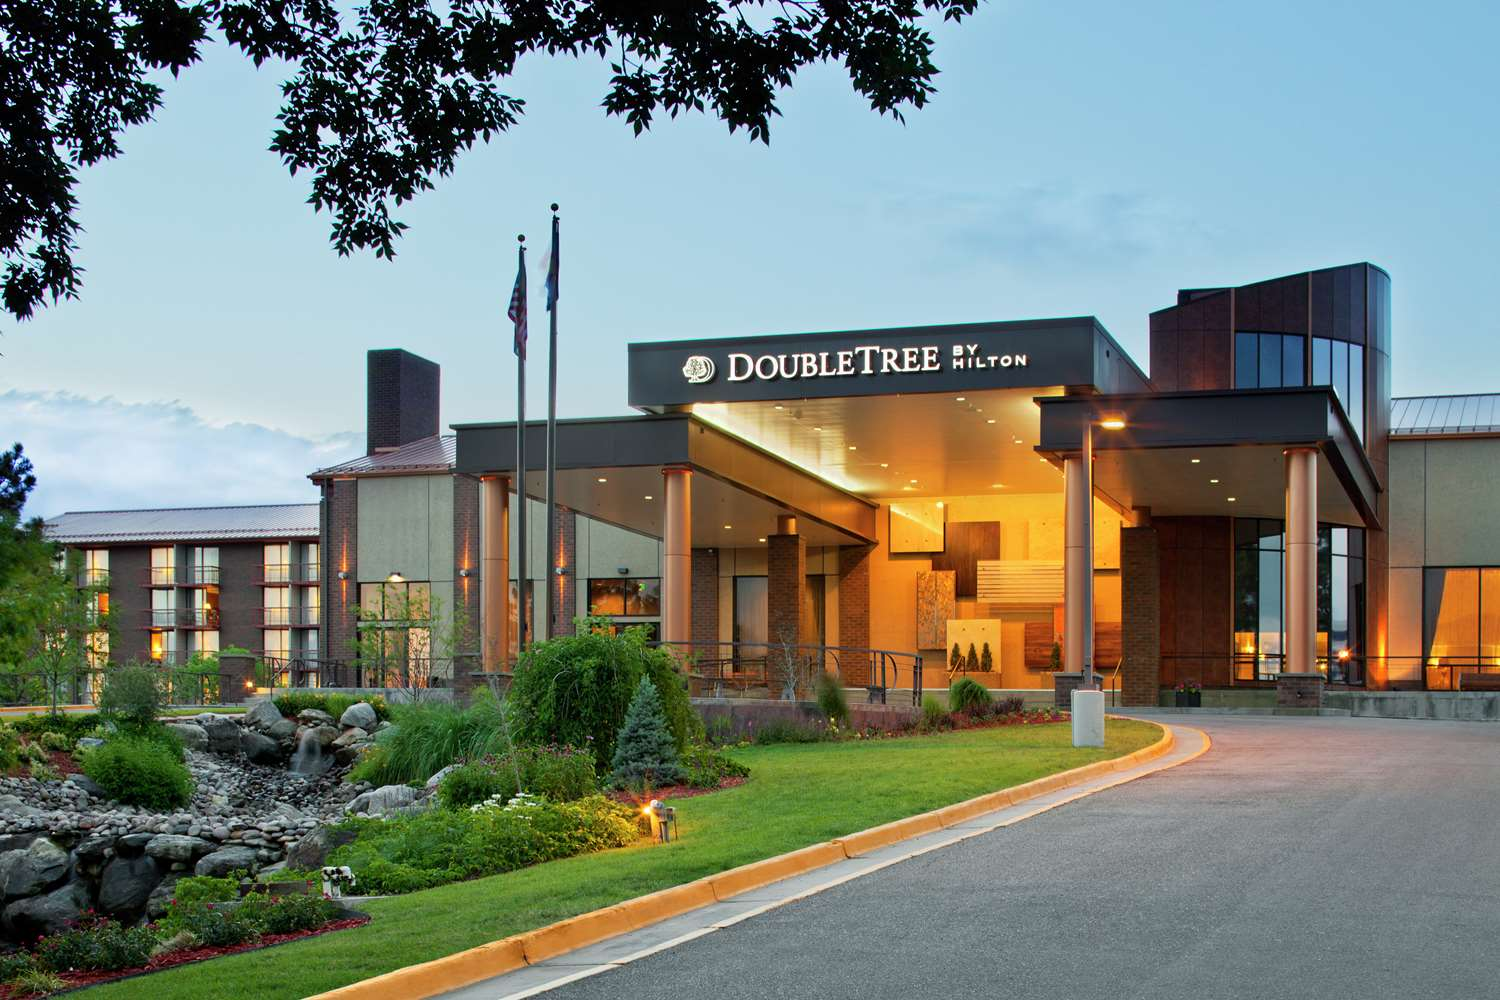 DoubleTree by Hilton Hotel Greenwood Village